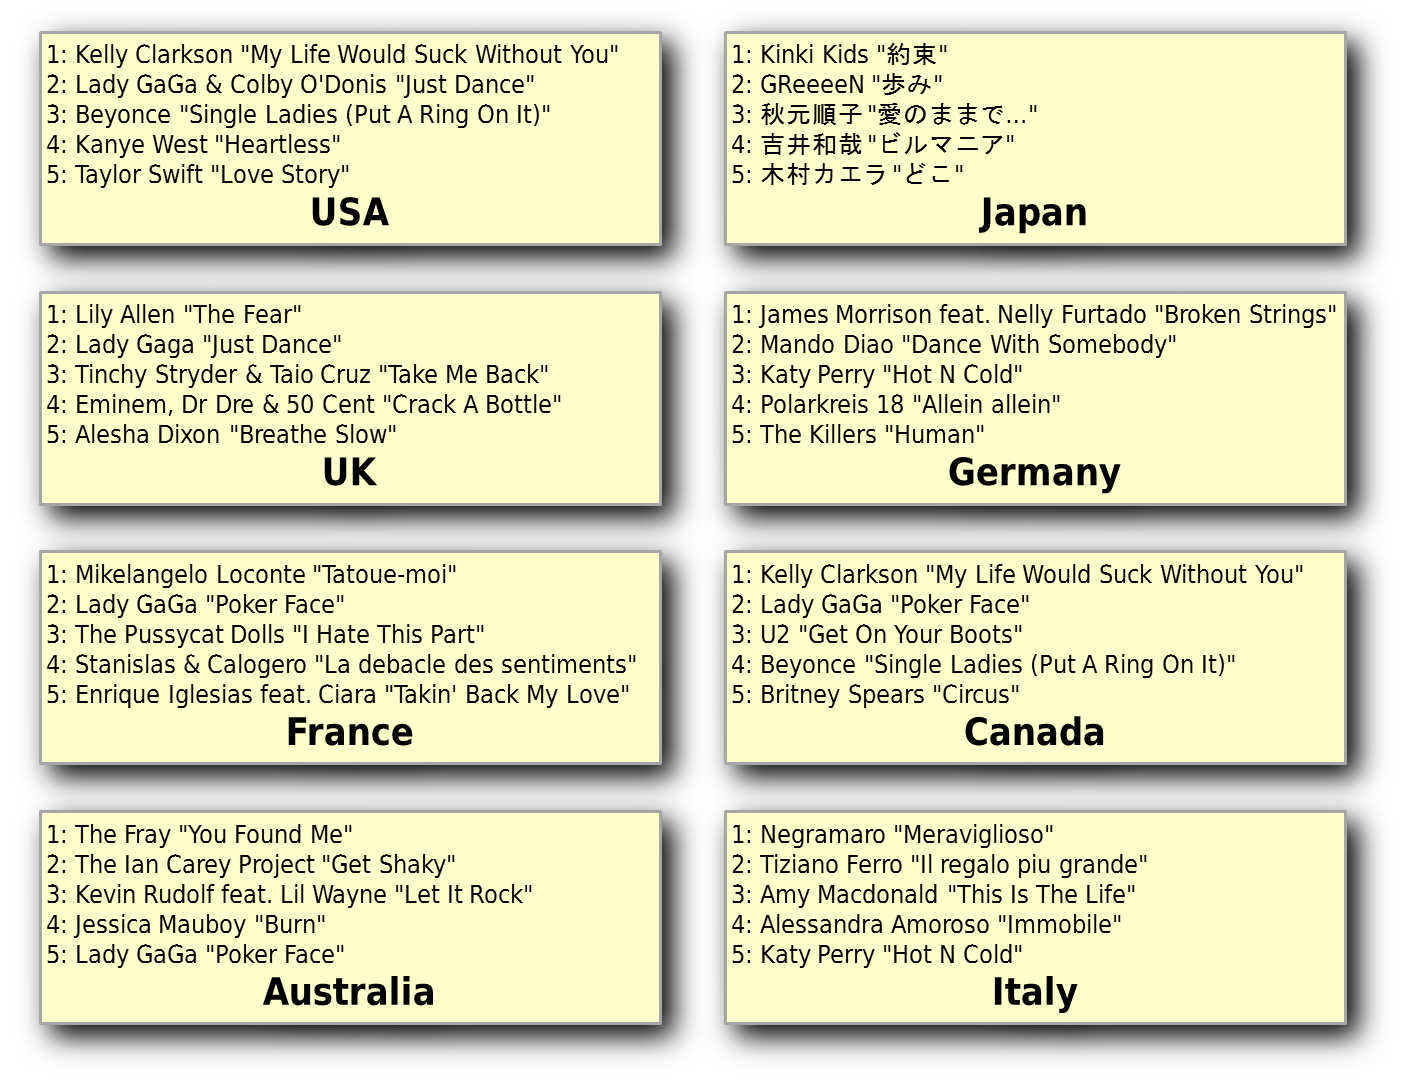 List of top 5 songs in 8 countries